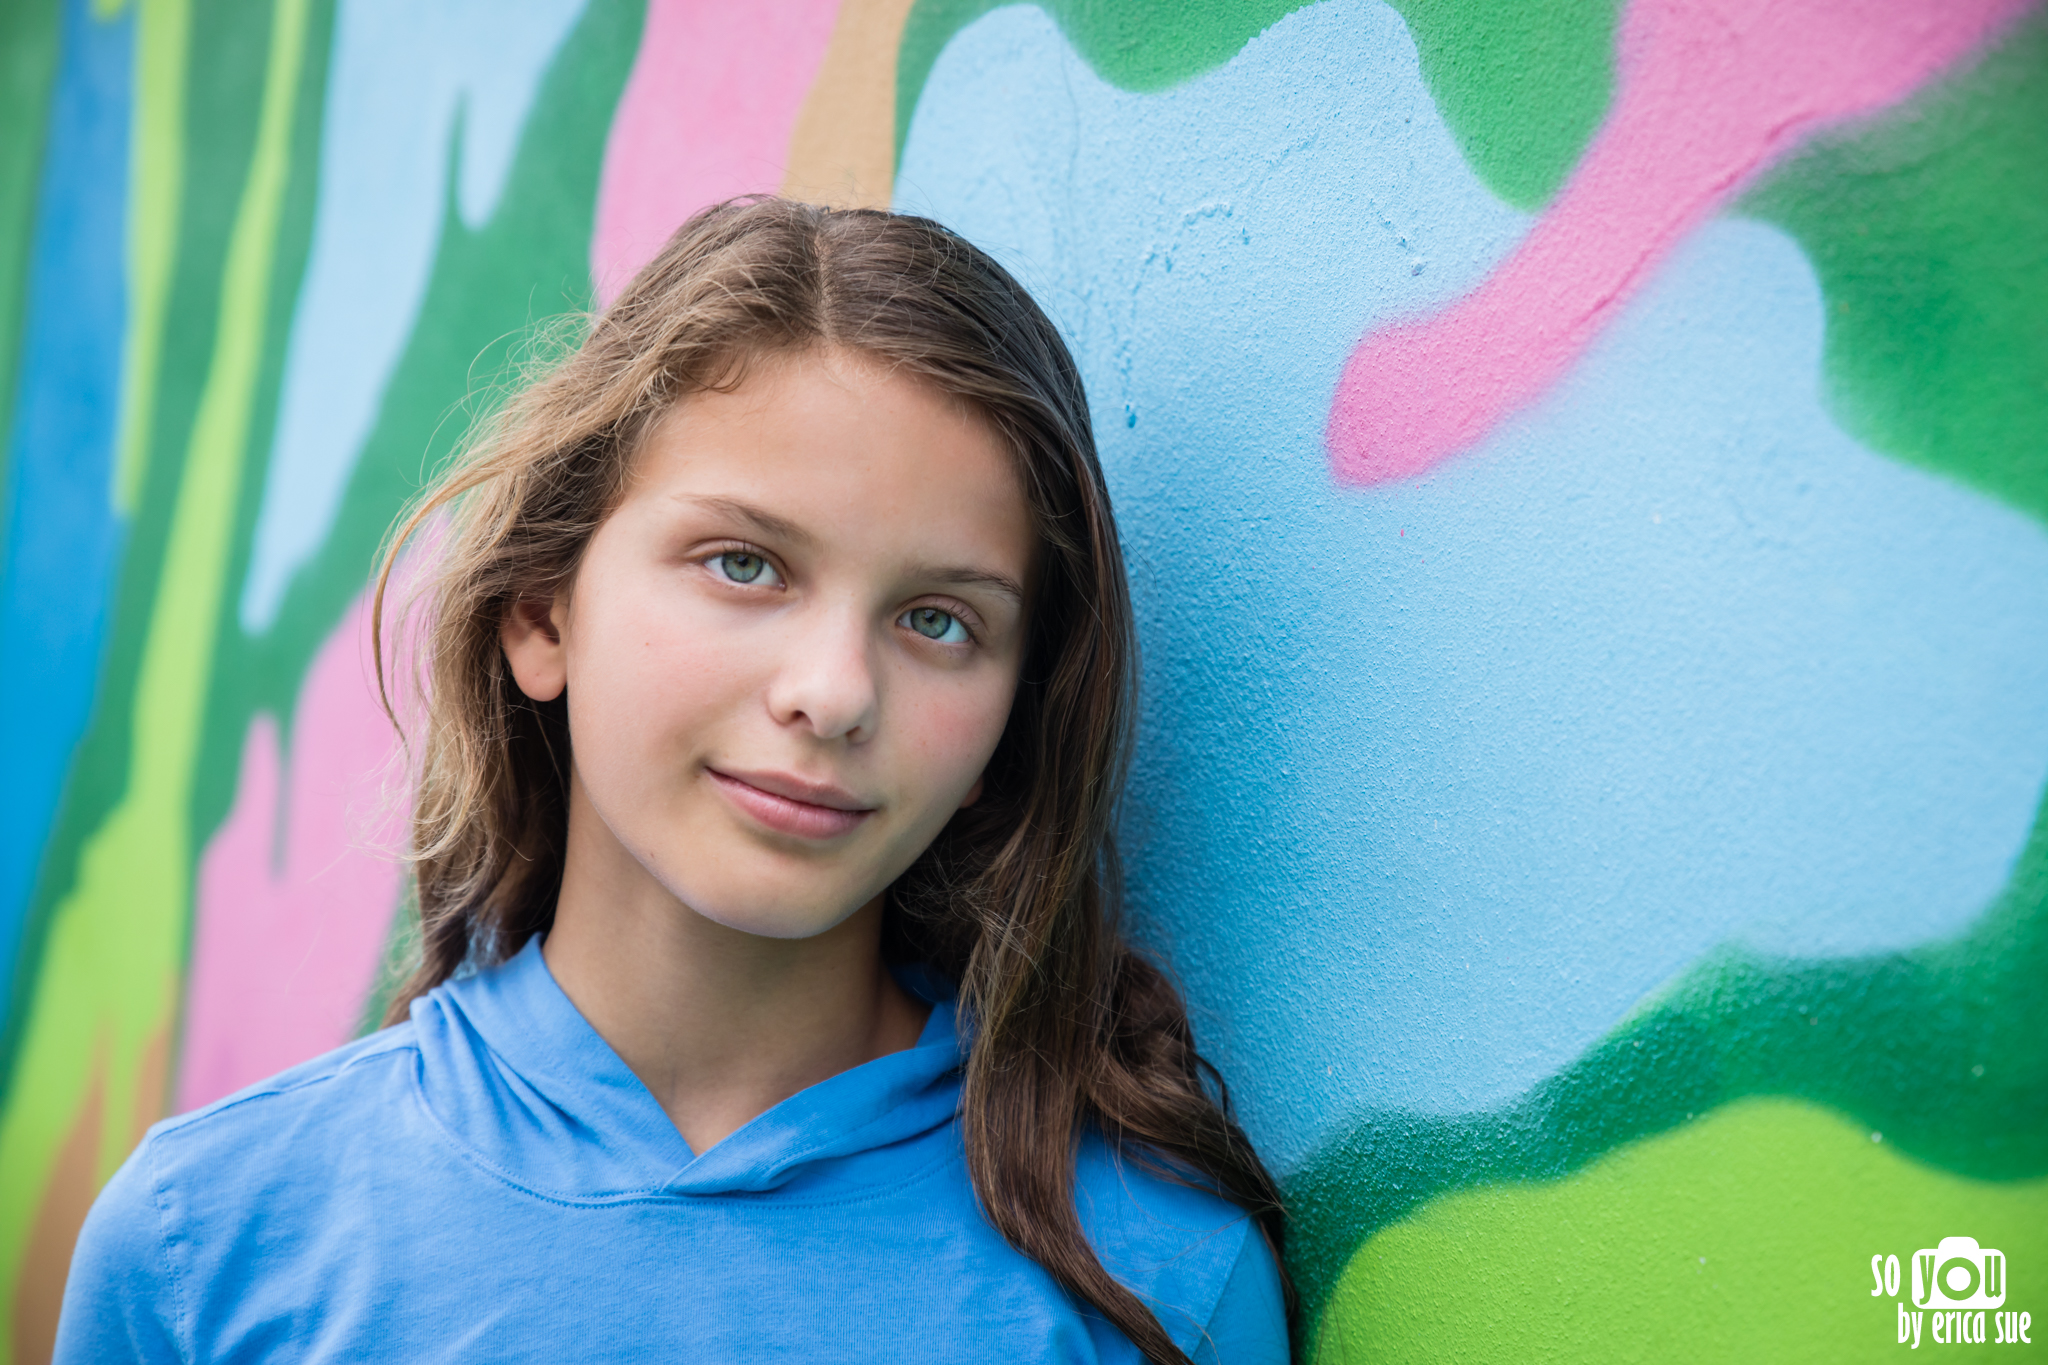 so-you-by-erica-sue-wynwood-walls-miami-photography-mitzvah-pre-shoot-5340.jpg